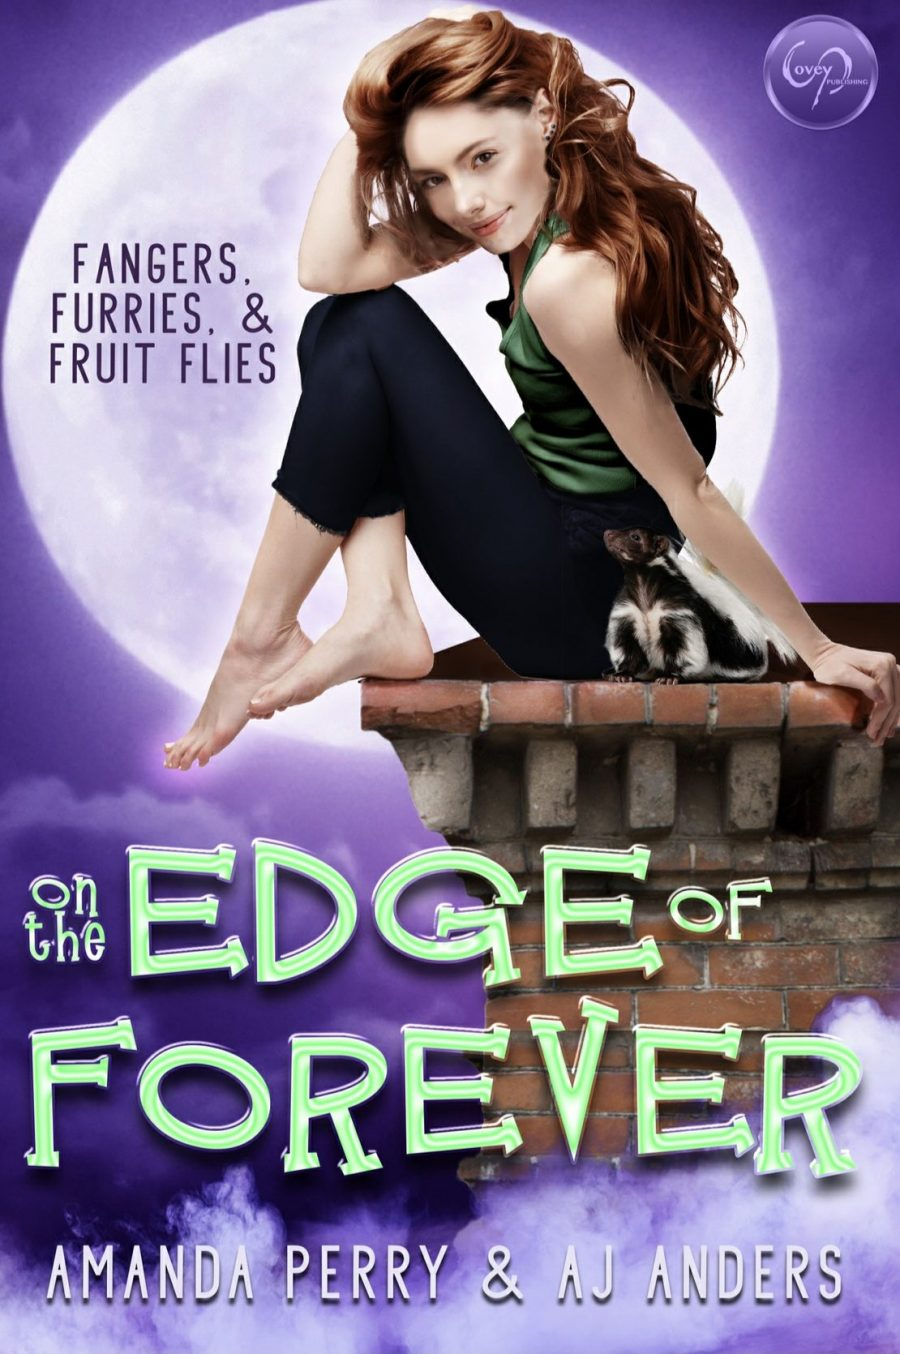 On the Edge of Forever by Amanda Perry and AJ Anders - A Book Review #BookReview #BookBlogger #Slowburn #Whychoose #RH #Funny